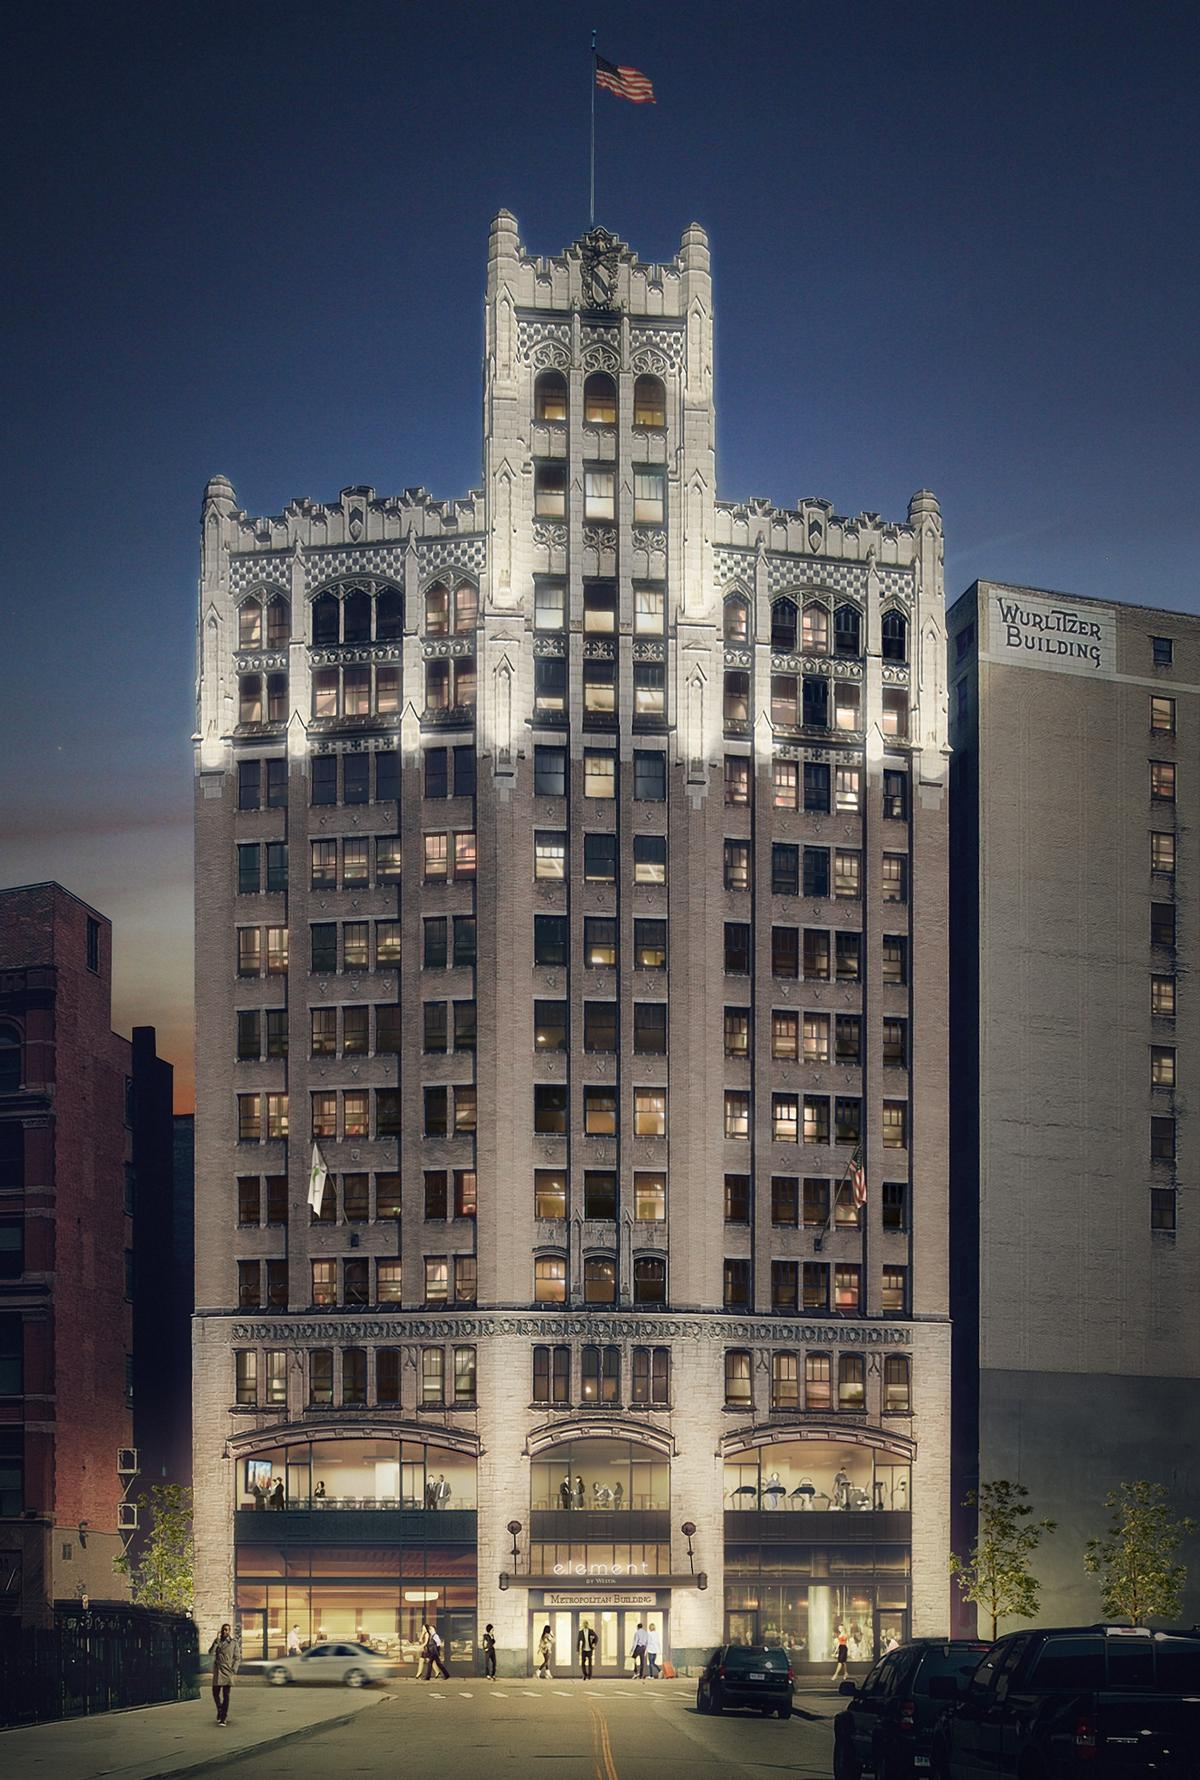 The 92-year-old building – built during the Roaring Twenties – has long been considered one of downtown Detroit's most striking structures. / Courtesy of Element Detroit